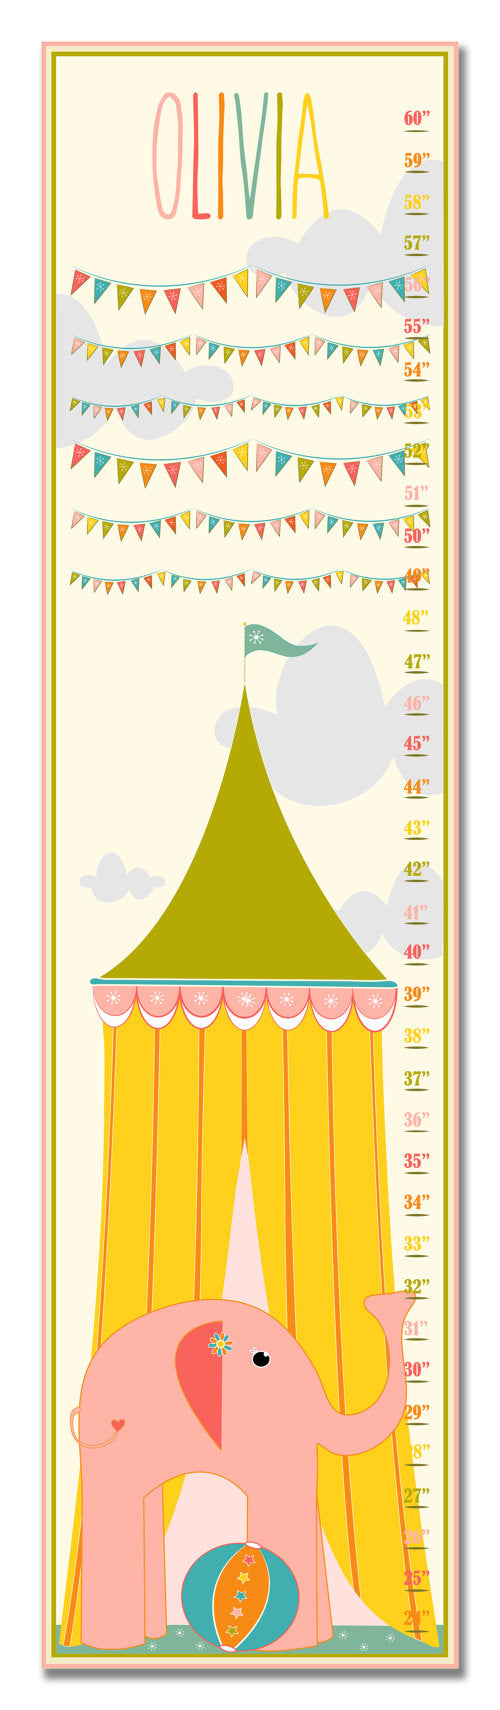 Circus Tent Personalized Growth Chart - Baby Gifts